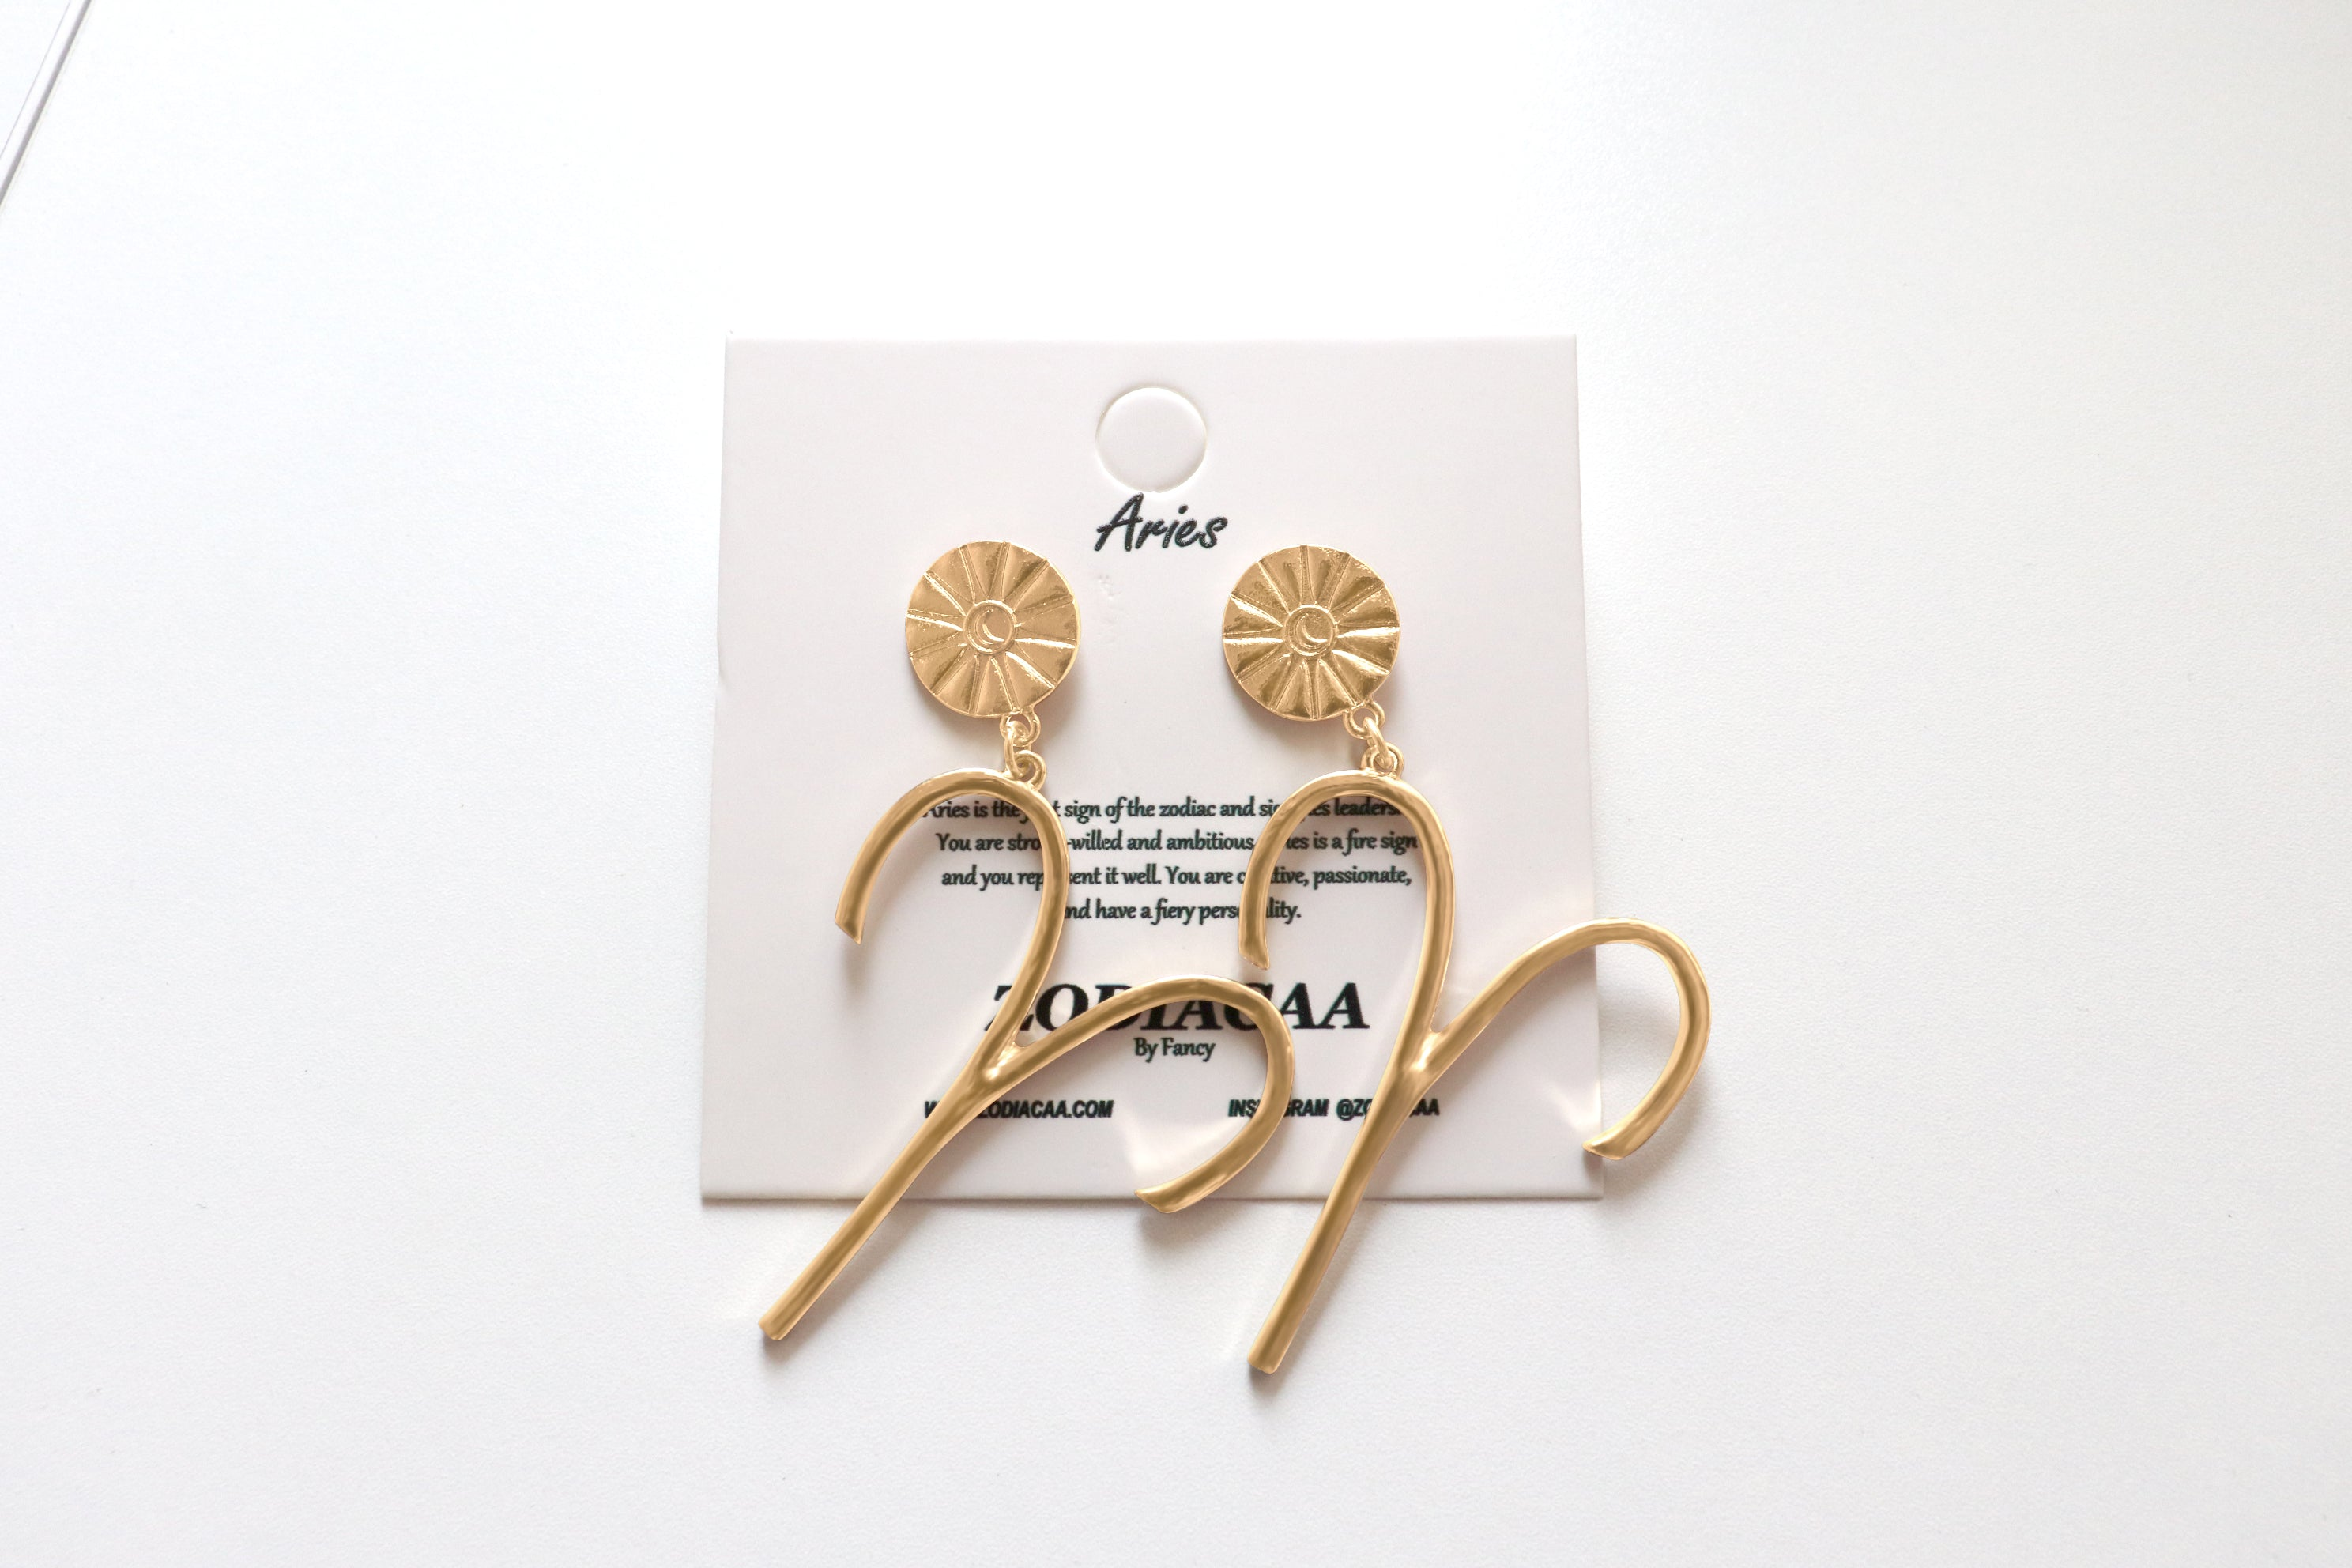 Aries XL earrings